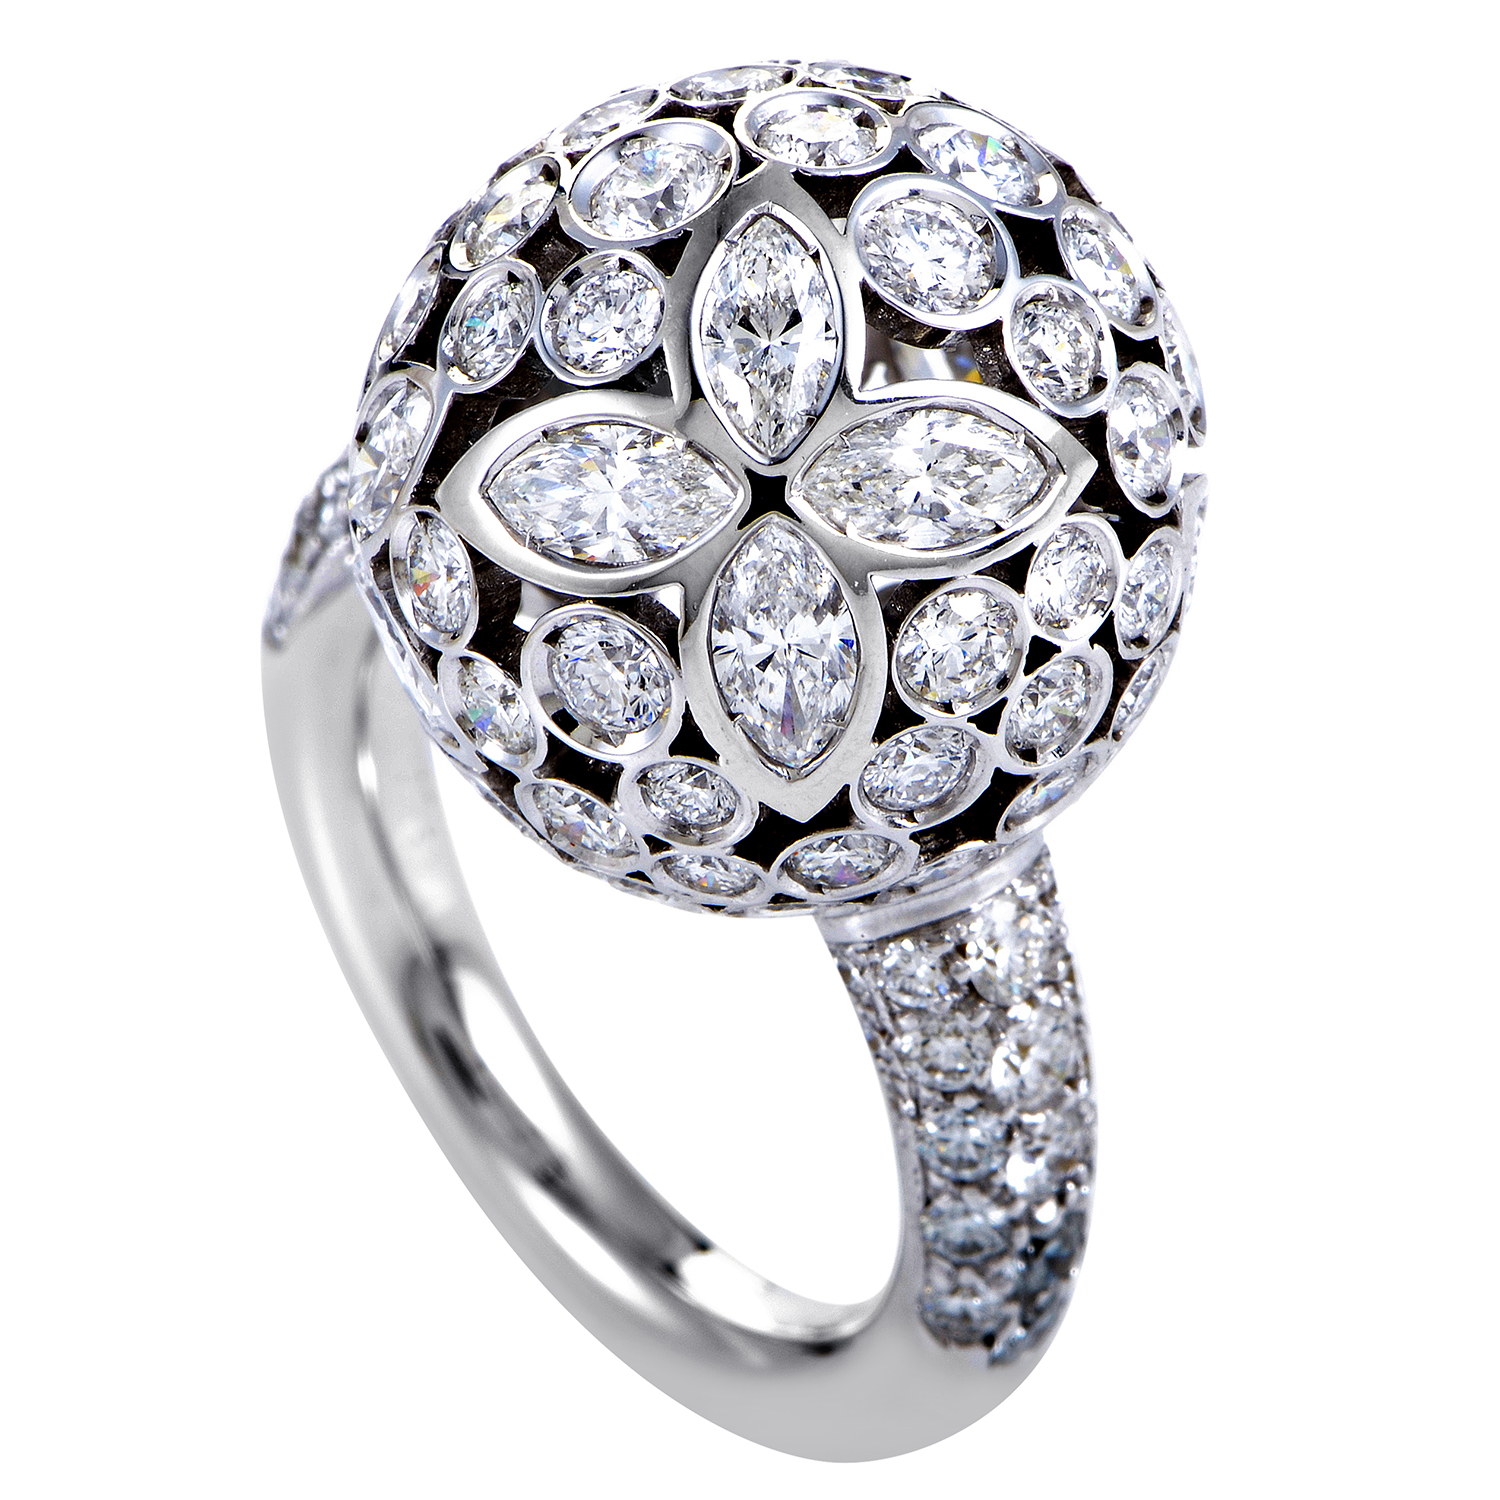 Women's 18K White Gold Floral Diamond Sphere Ring